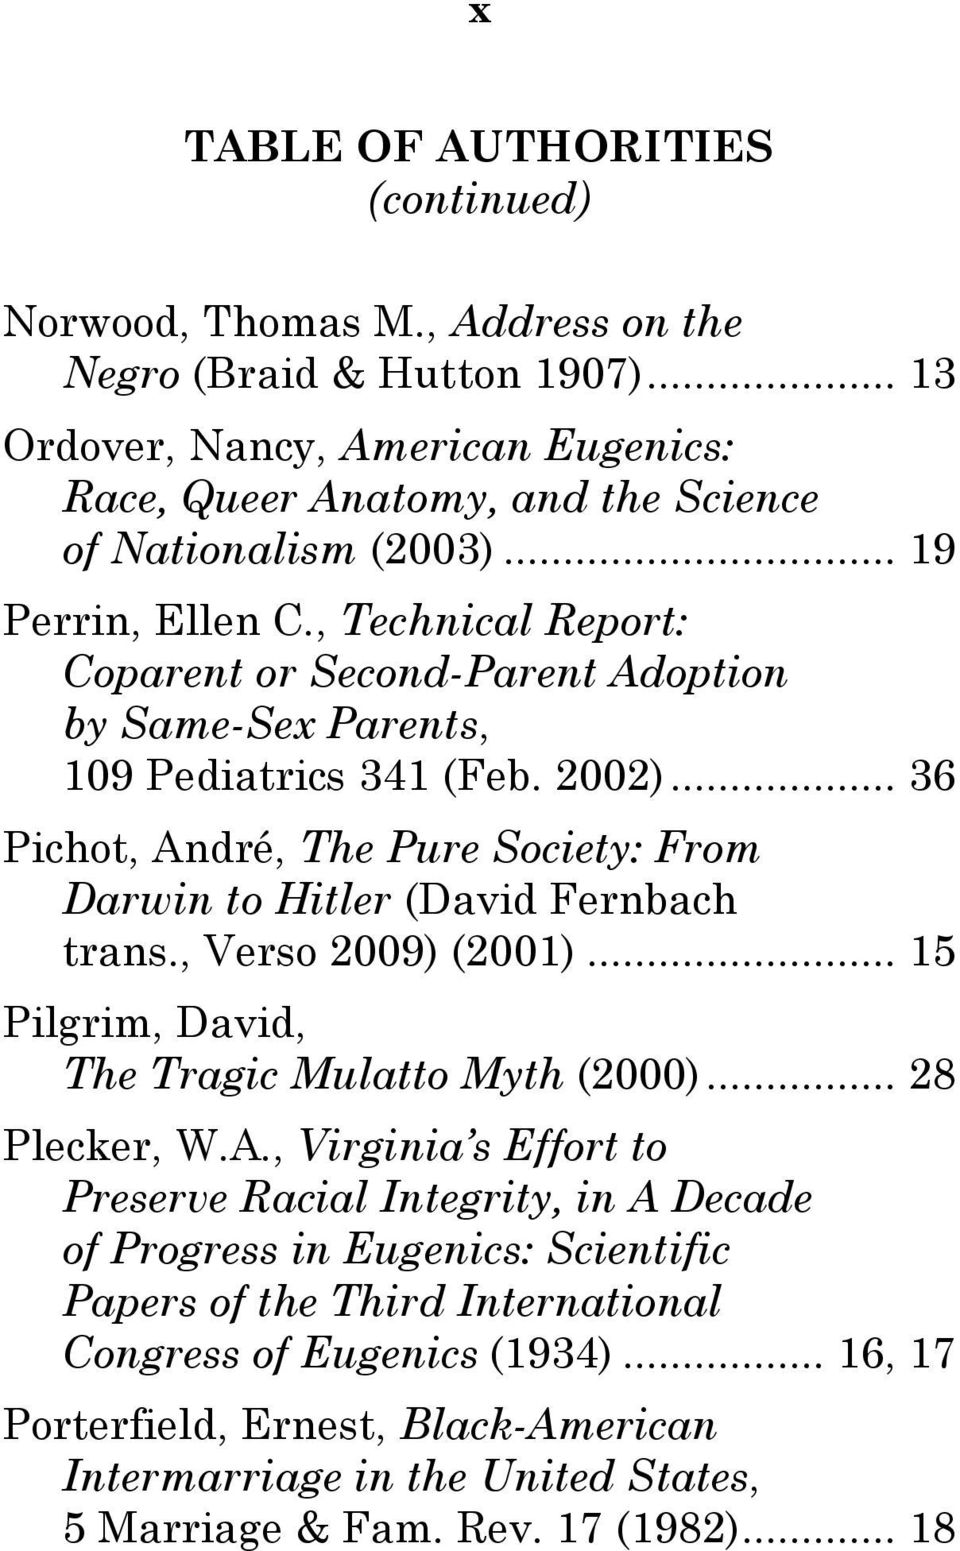 .. 36 Pichot, André, The Pure Society: From Darwin to Hitler (David Fernbach trans., Verso 2009) (2001)... 15 Pilgrim, David, The Tragic Mulatto Myth (2000)... 28 Plecker, W.A., Virginia s Effort to Preserve Racial Integrity, in A Decade of Progress in Eugenics: Scientific Papers of the Third International Congress of Eugenics (1934).